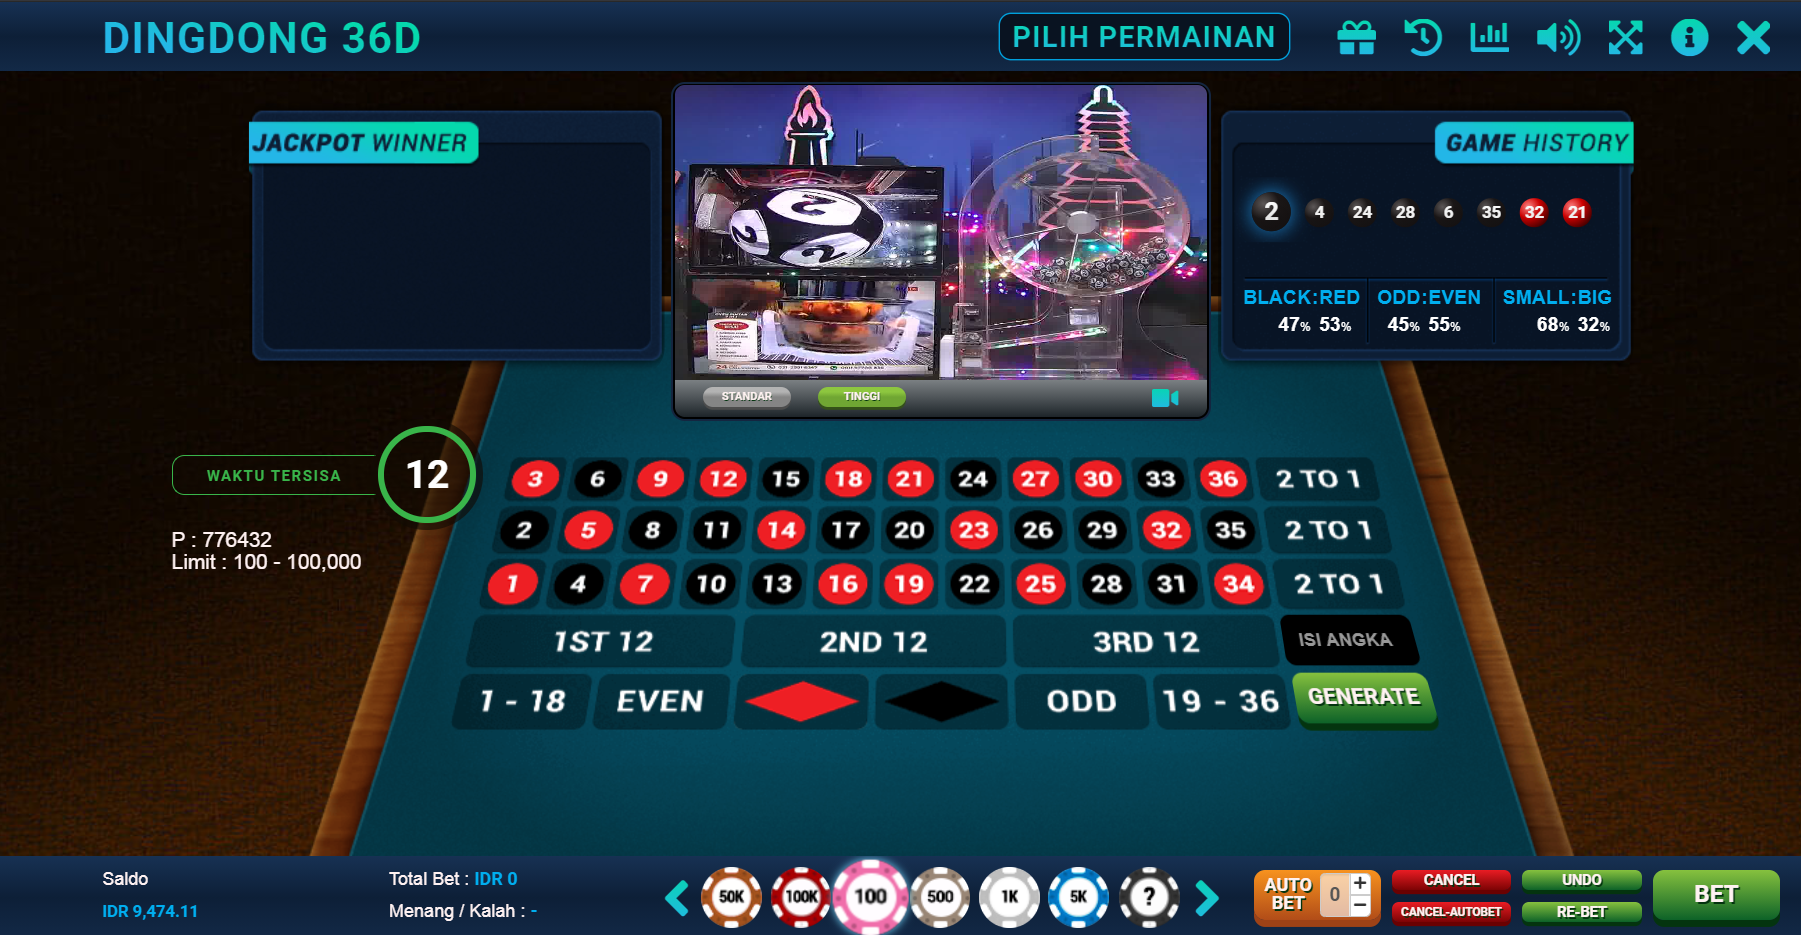 Tips Terbaik Bermain Live Dingdong 36D Di Afatogel